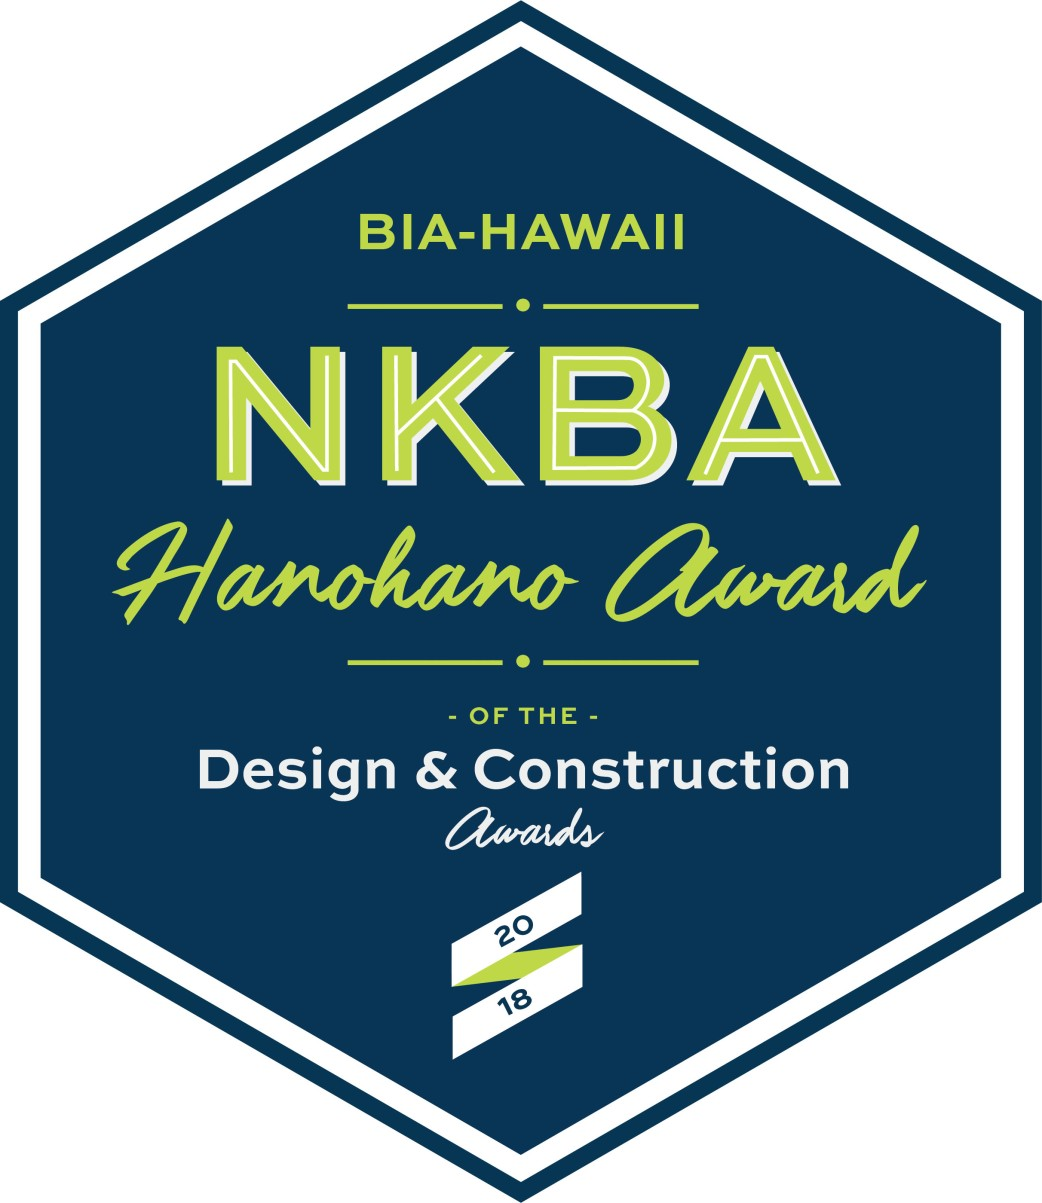 BIA_HI_BUILDING_INDUSTRY_CONSTRUCTION_NKBA_HANAHANO_BADGE copy